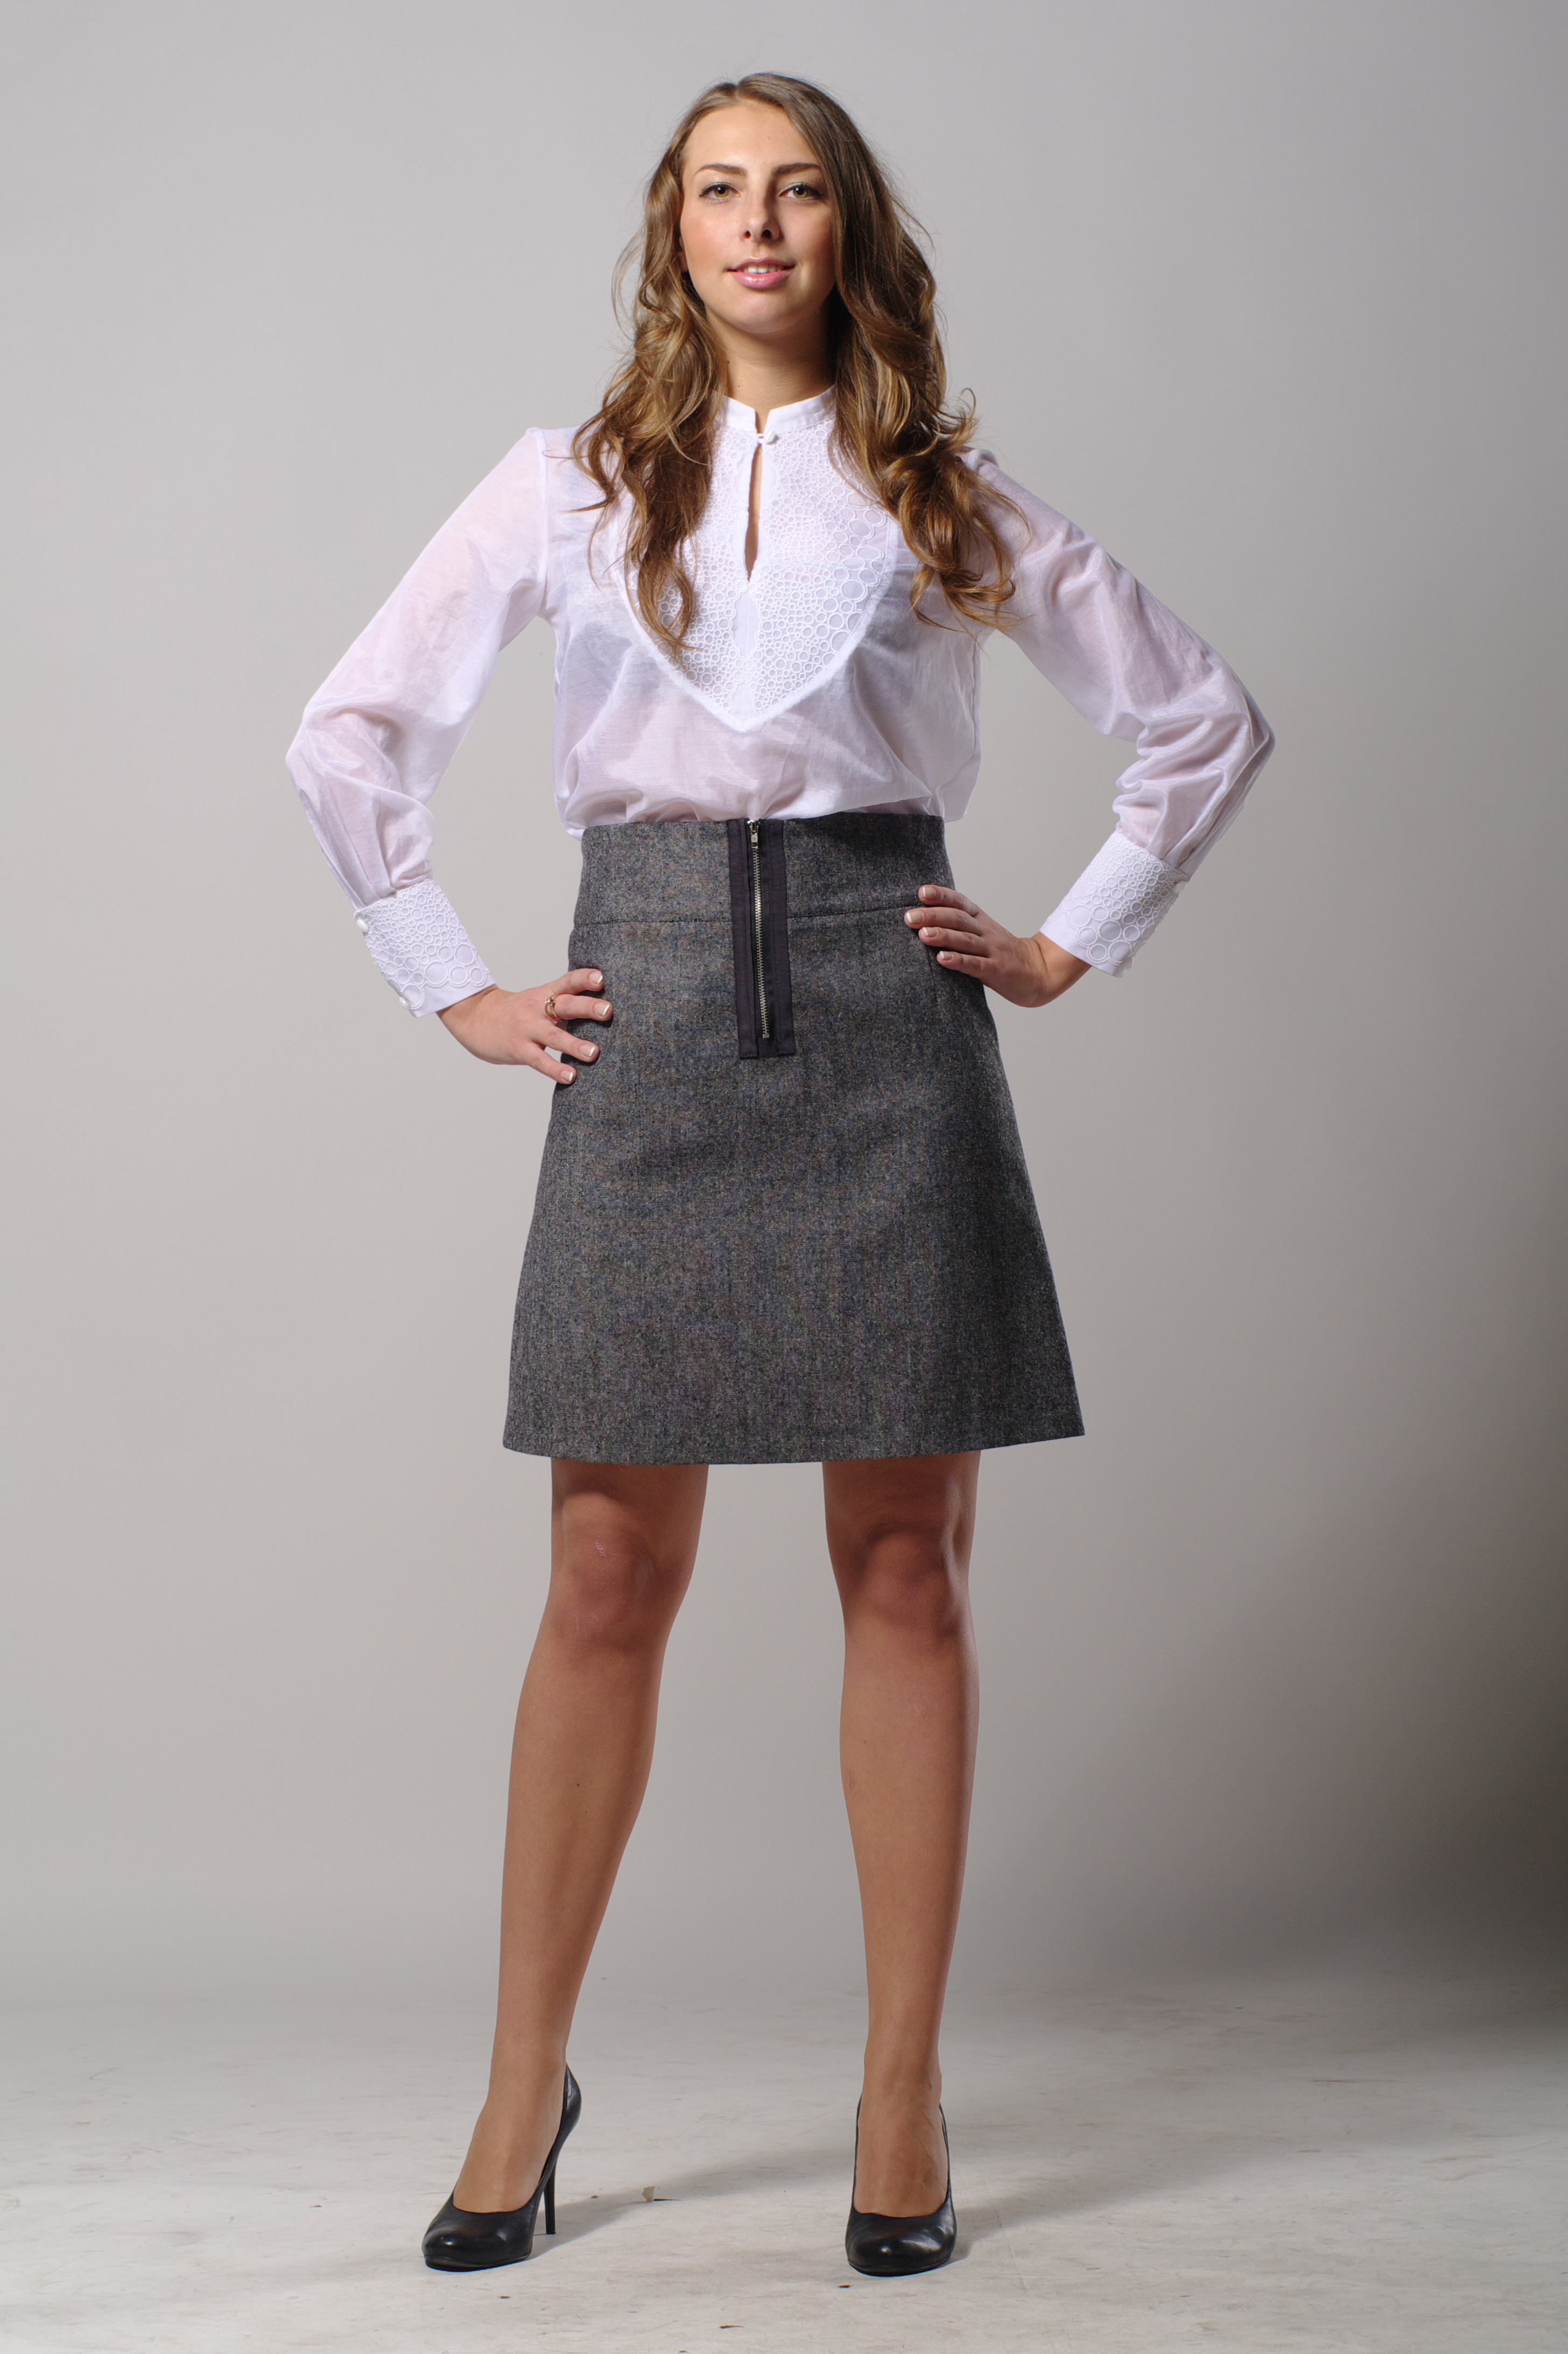 Buy Women's Gray Tweed Skirt